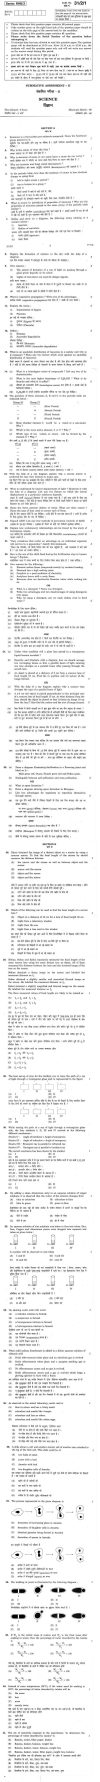 CBSE Class X Previous Year Question Papers 2011: Science Image by AglaSem